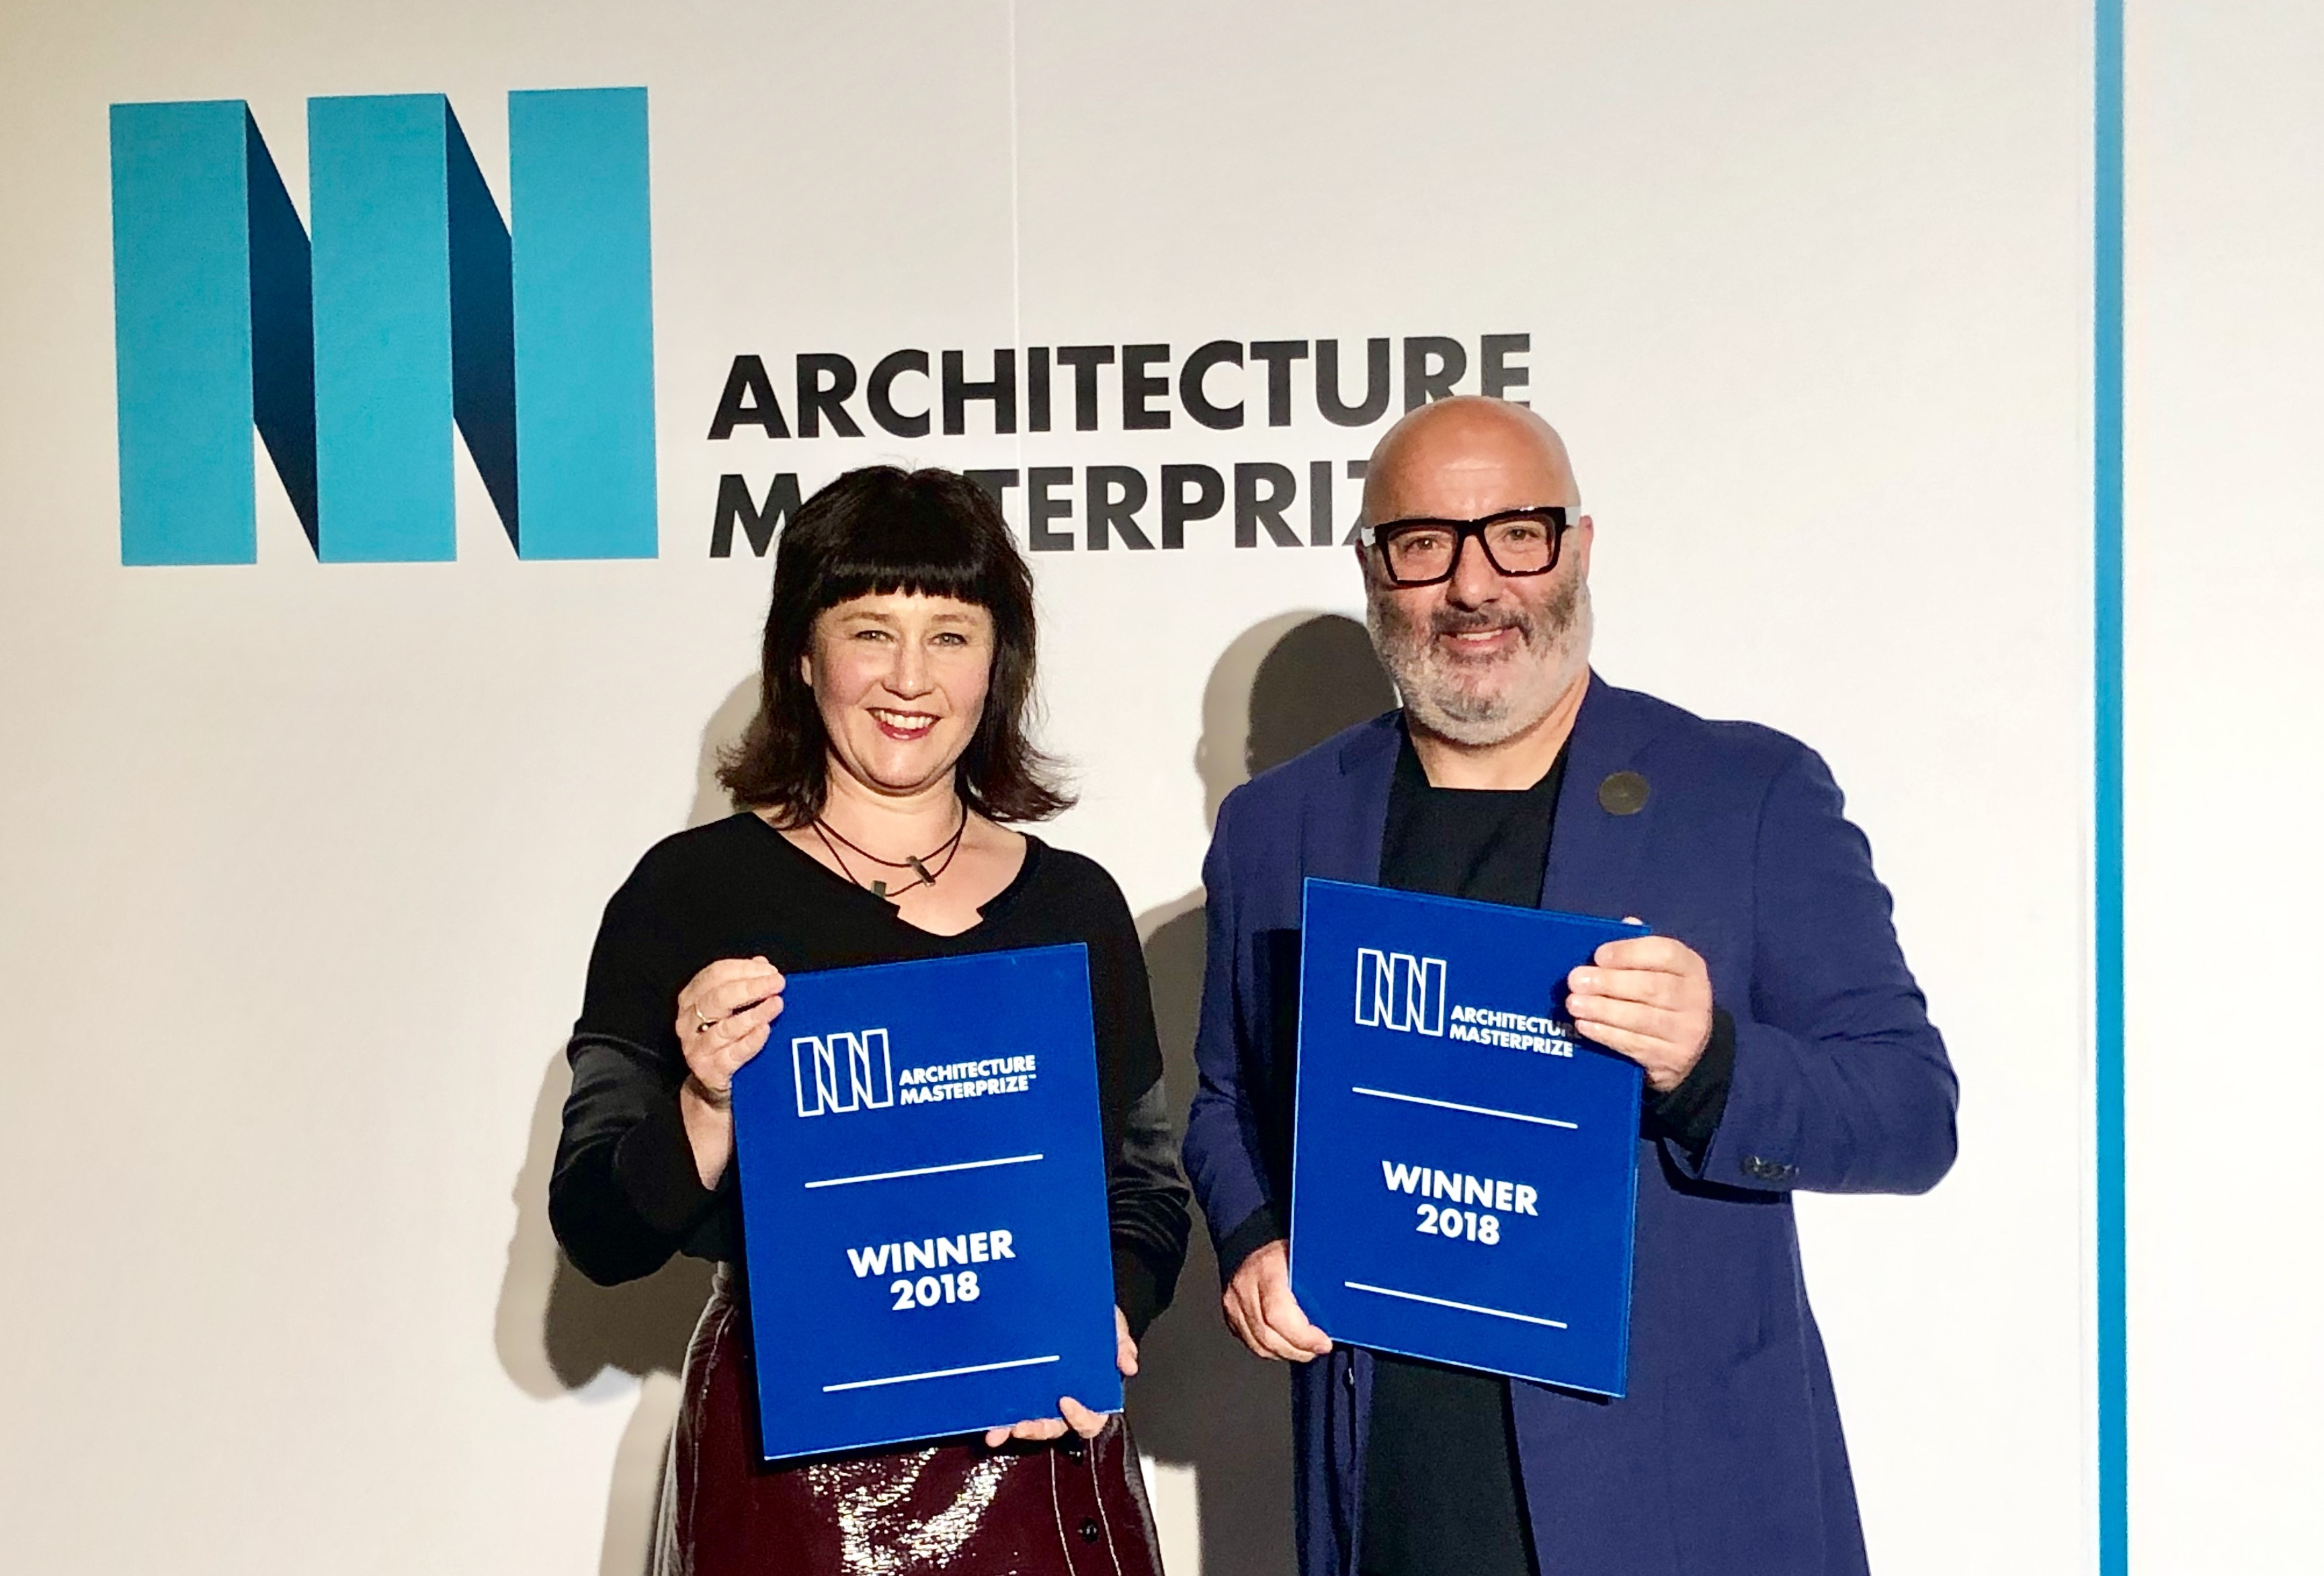 liminal-accept-architecture-master-prize-award-2019